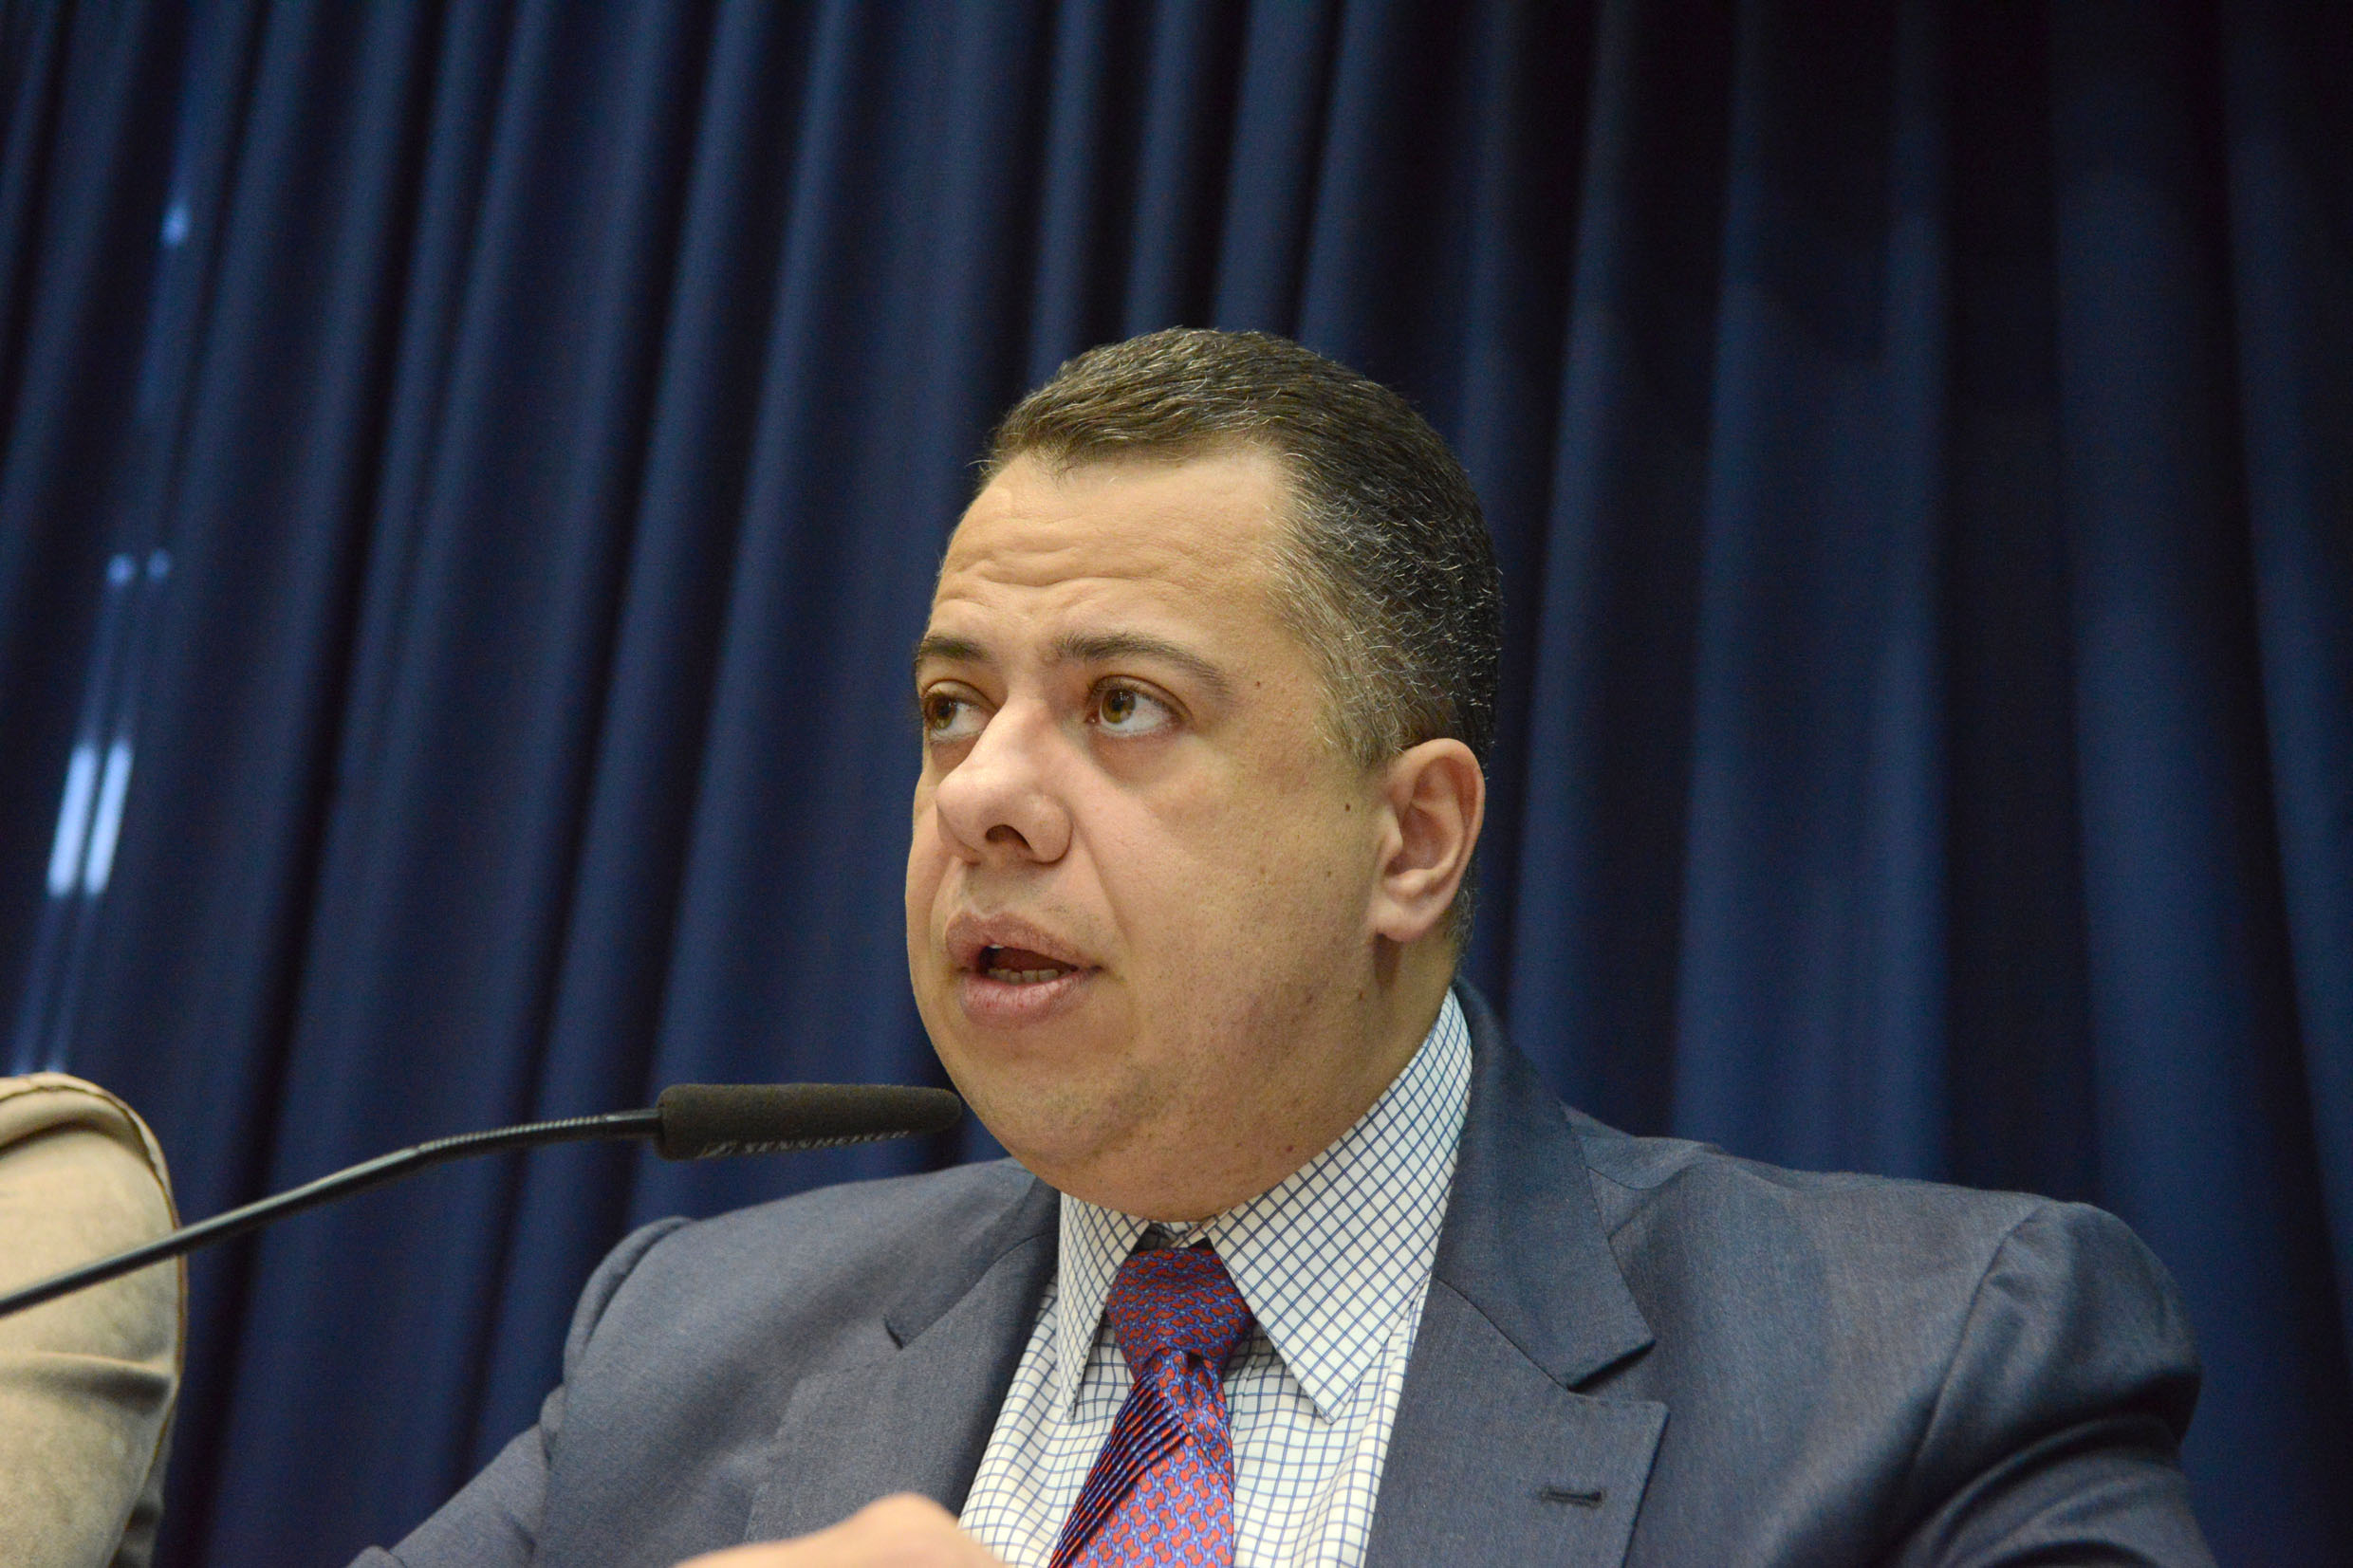 Wellington Moura preside a CPI<a style='float:right' href='https://www3.al.sp.gov.br/repositorio/noticia/N-06-2019/fg235624.jpg' target=_blank><img src='/_img/material-file-download-white.png' width='14px' alt='Clique para baixar a imagem'></a>